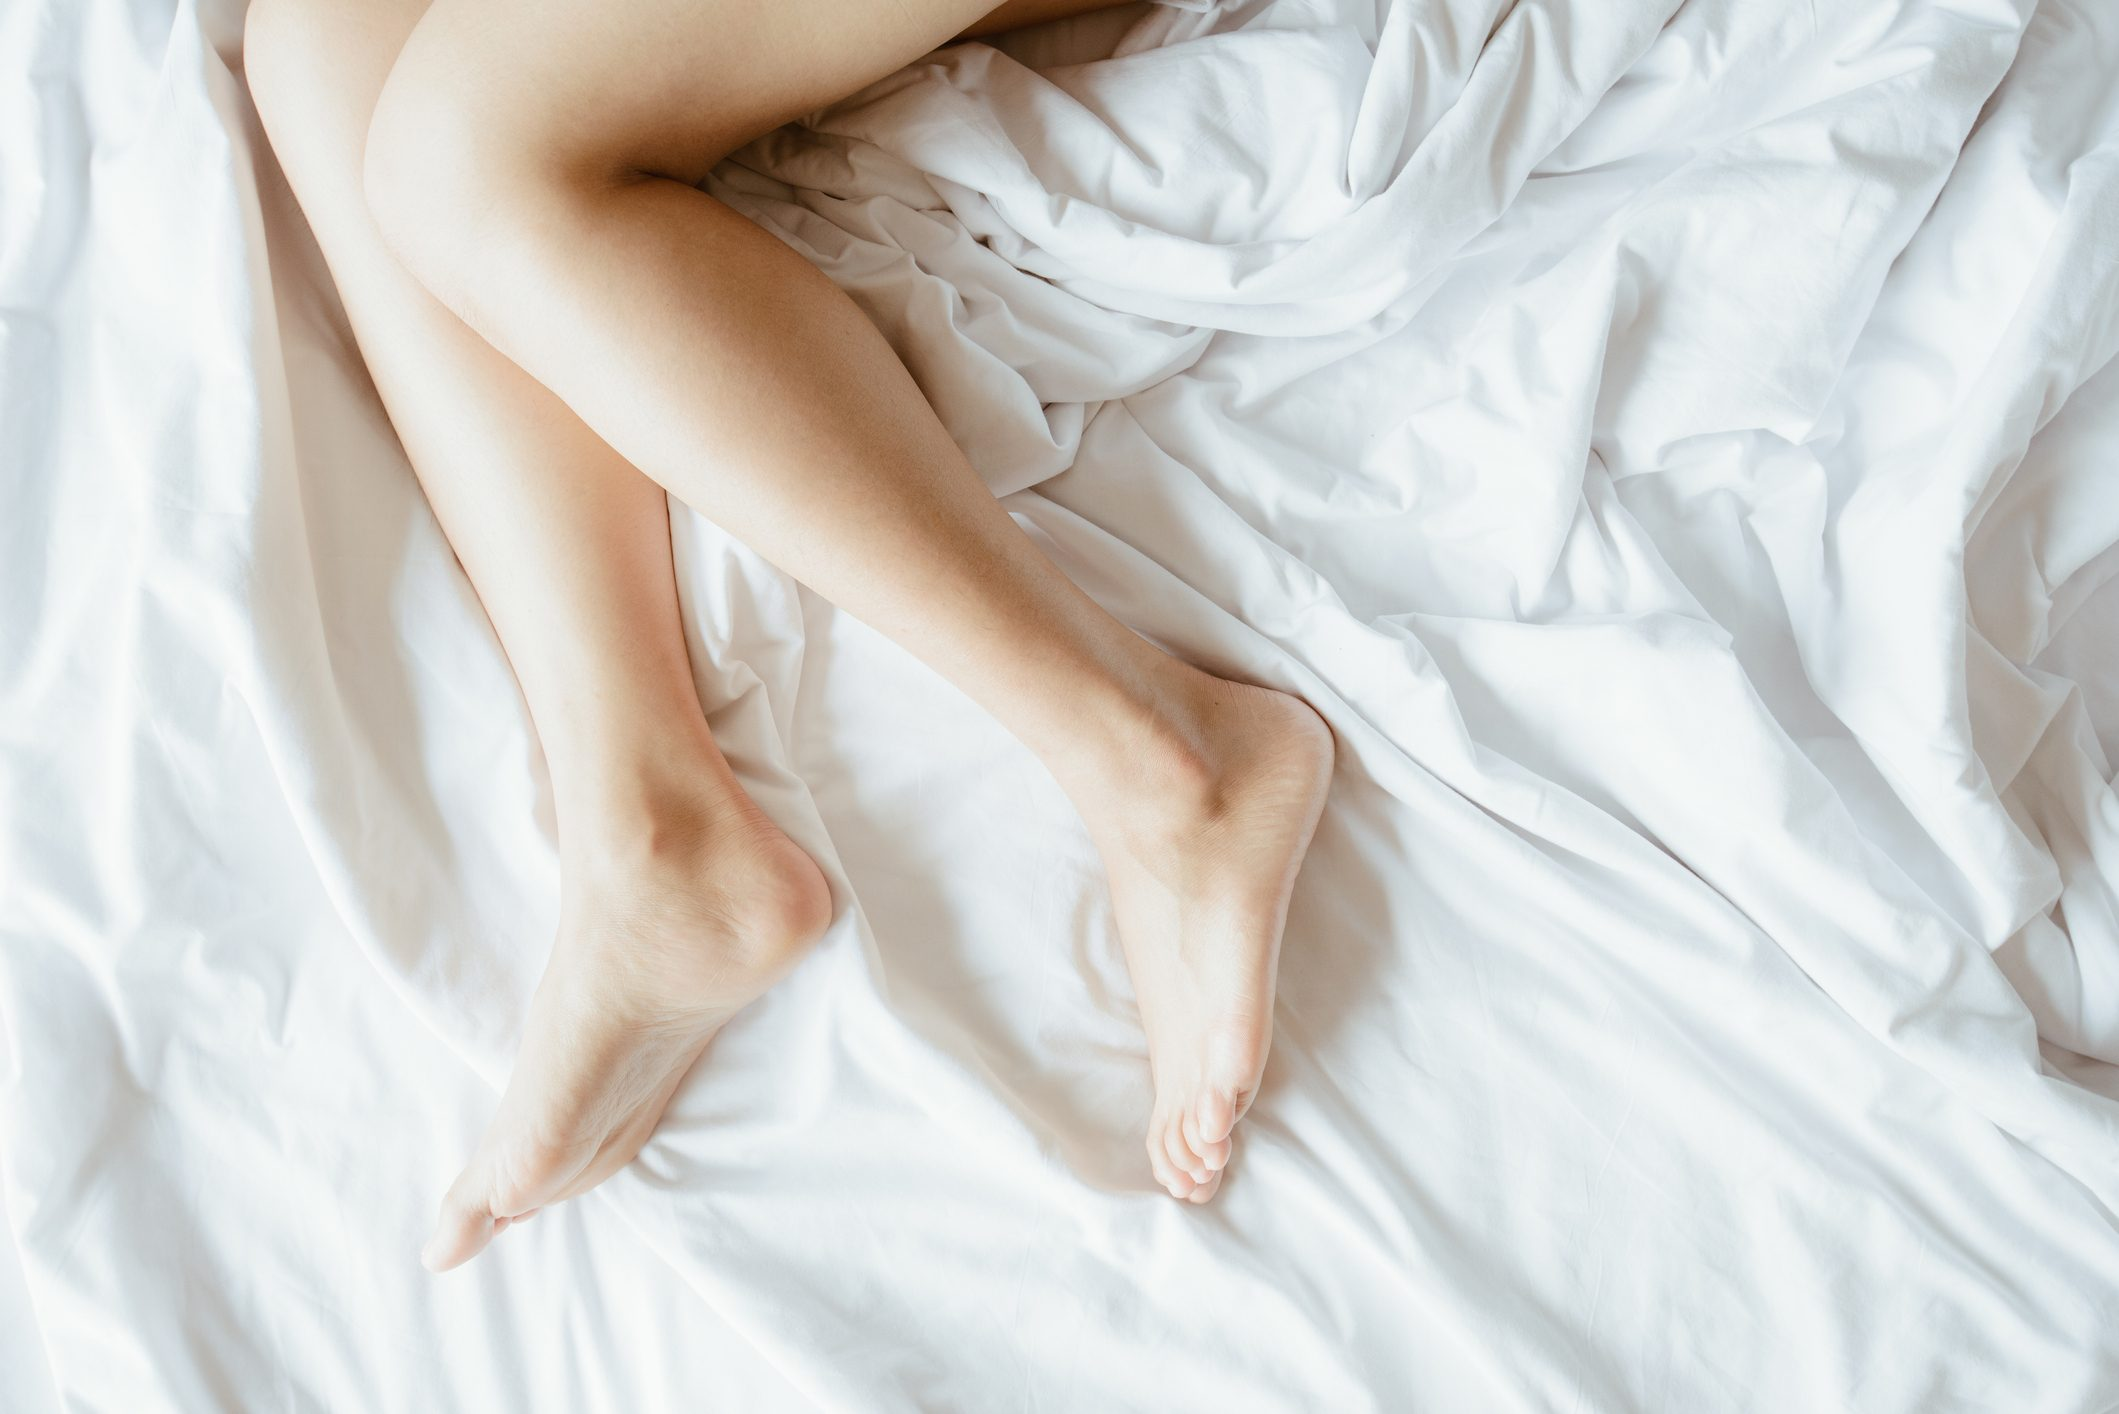 cropped shot of woman's legs in bed